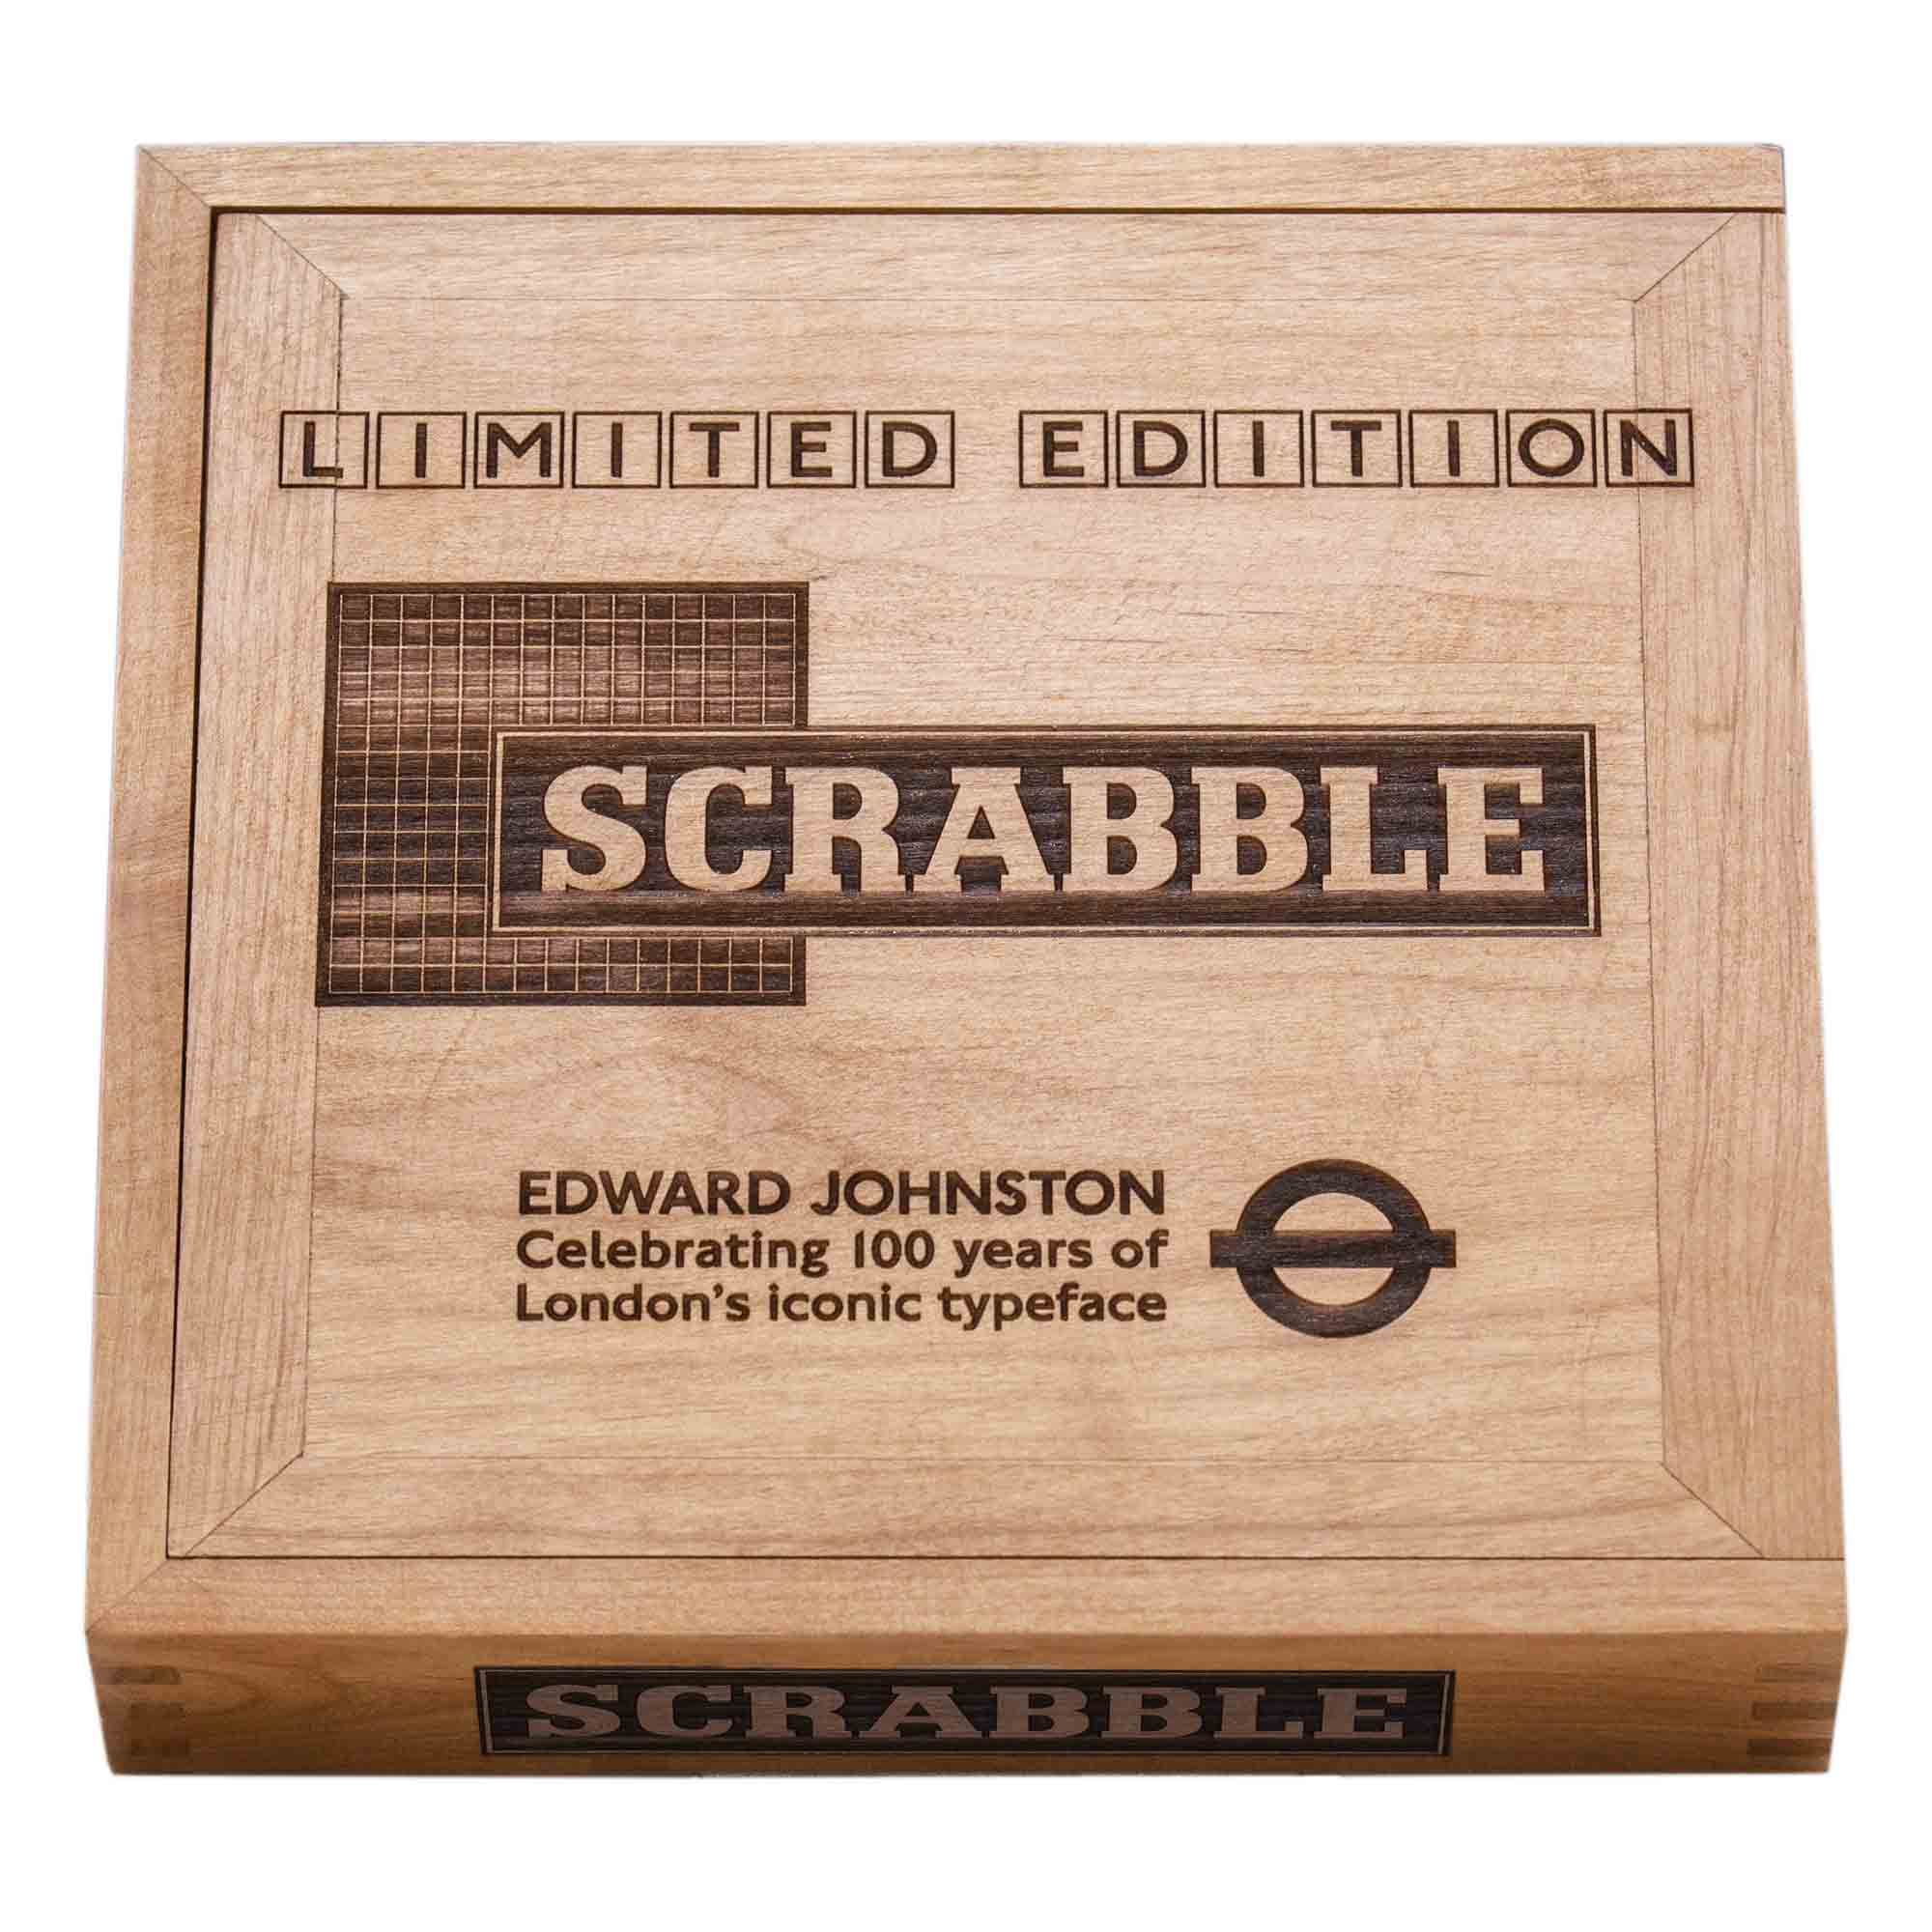 Exclusive to London Transport Museum. A classic board game fused together with the iconic font used on the London Underground for over 100 years.